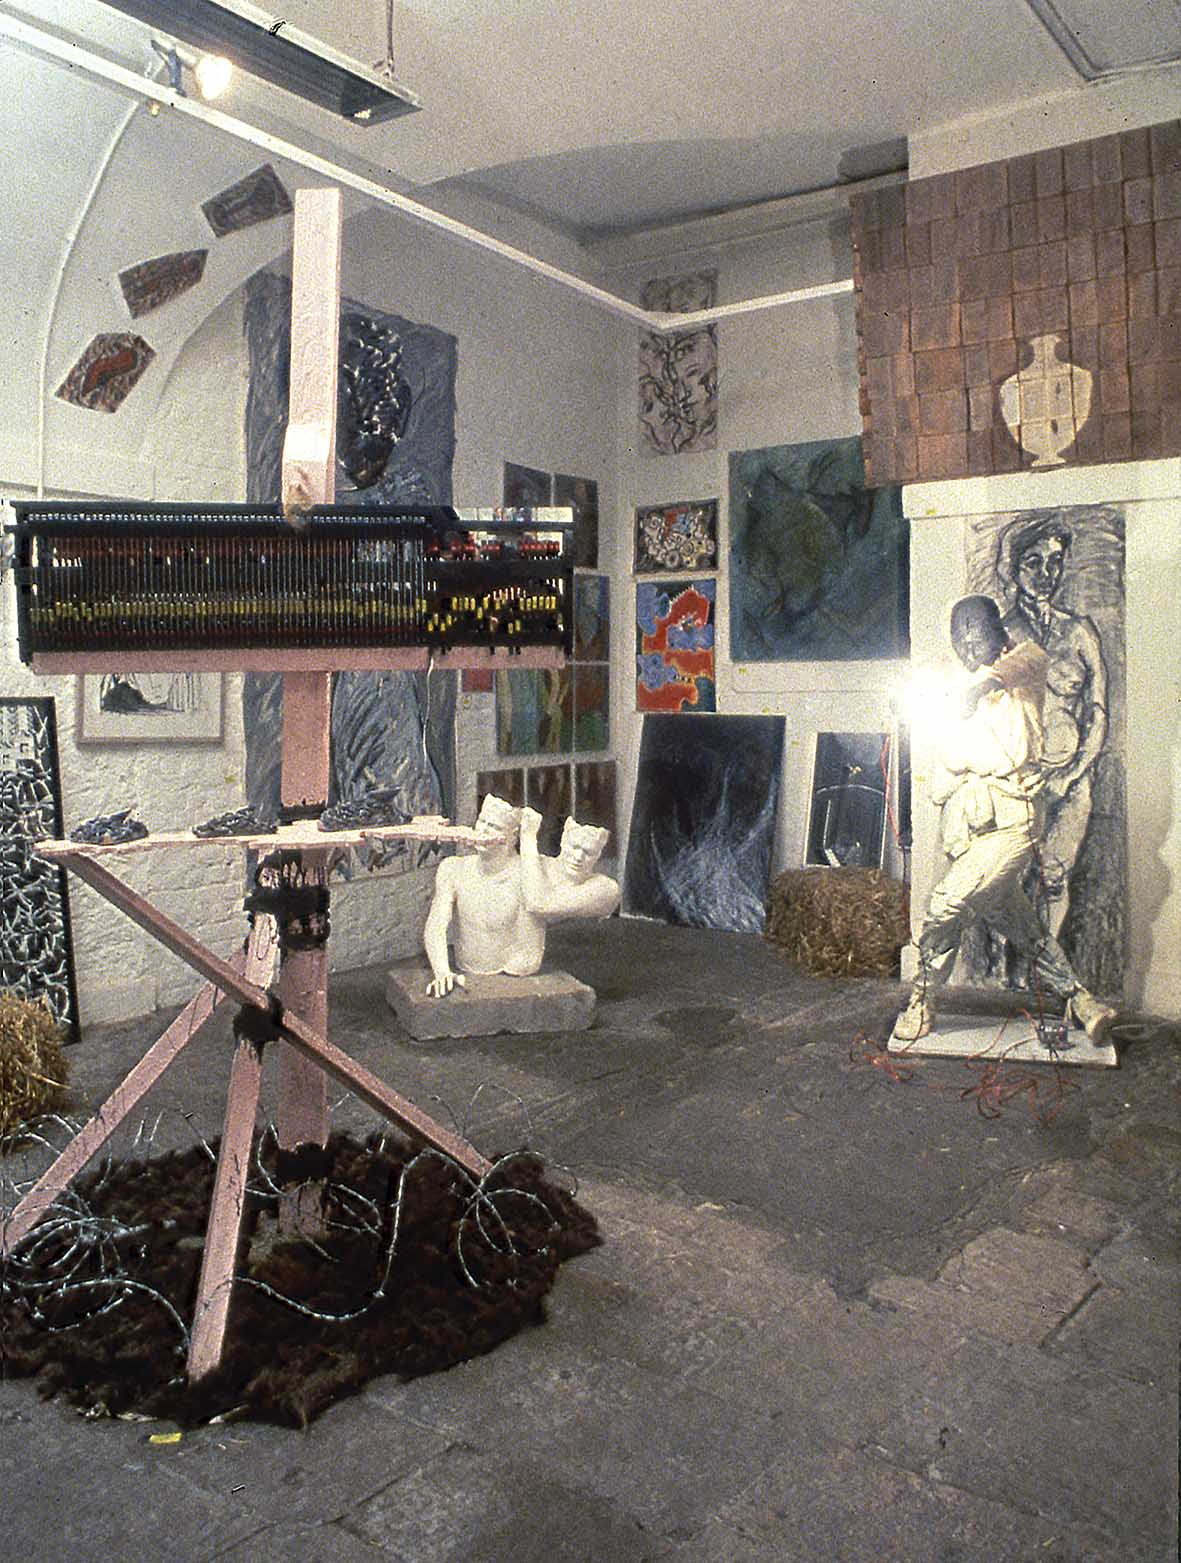 Our Wonderful Culture: Art in Ruins. Installation View #6